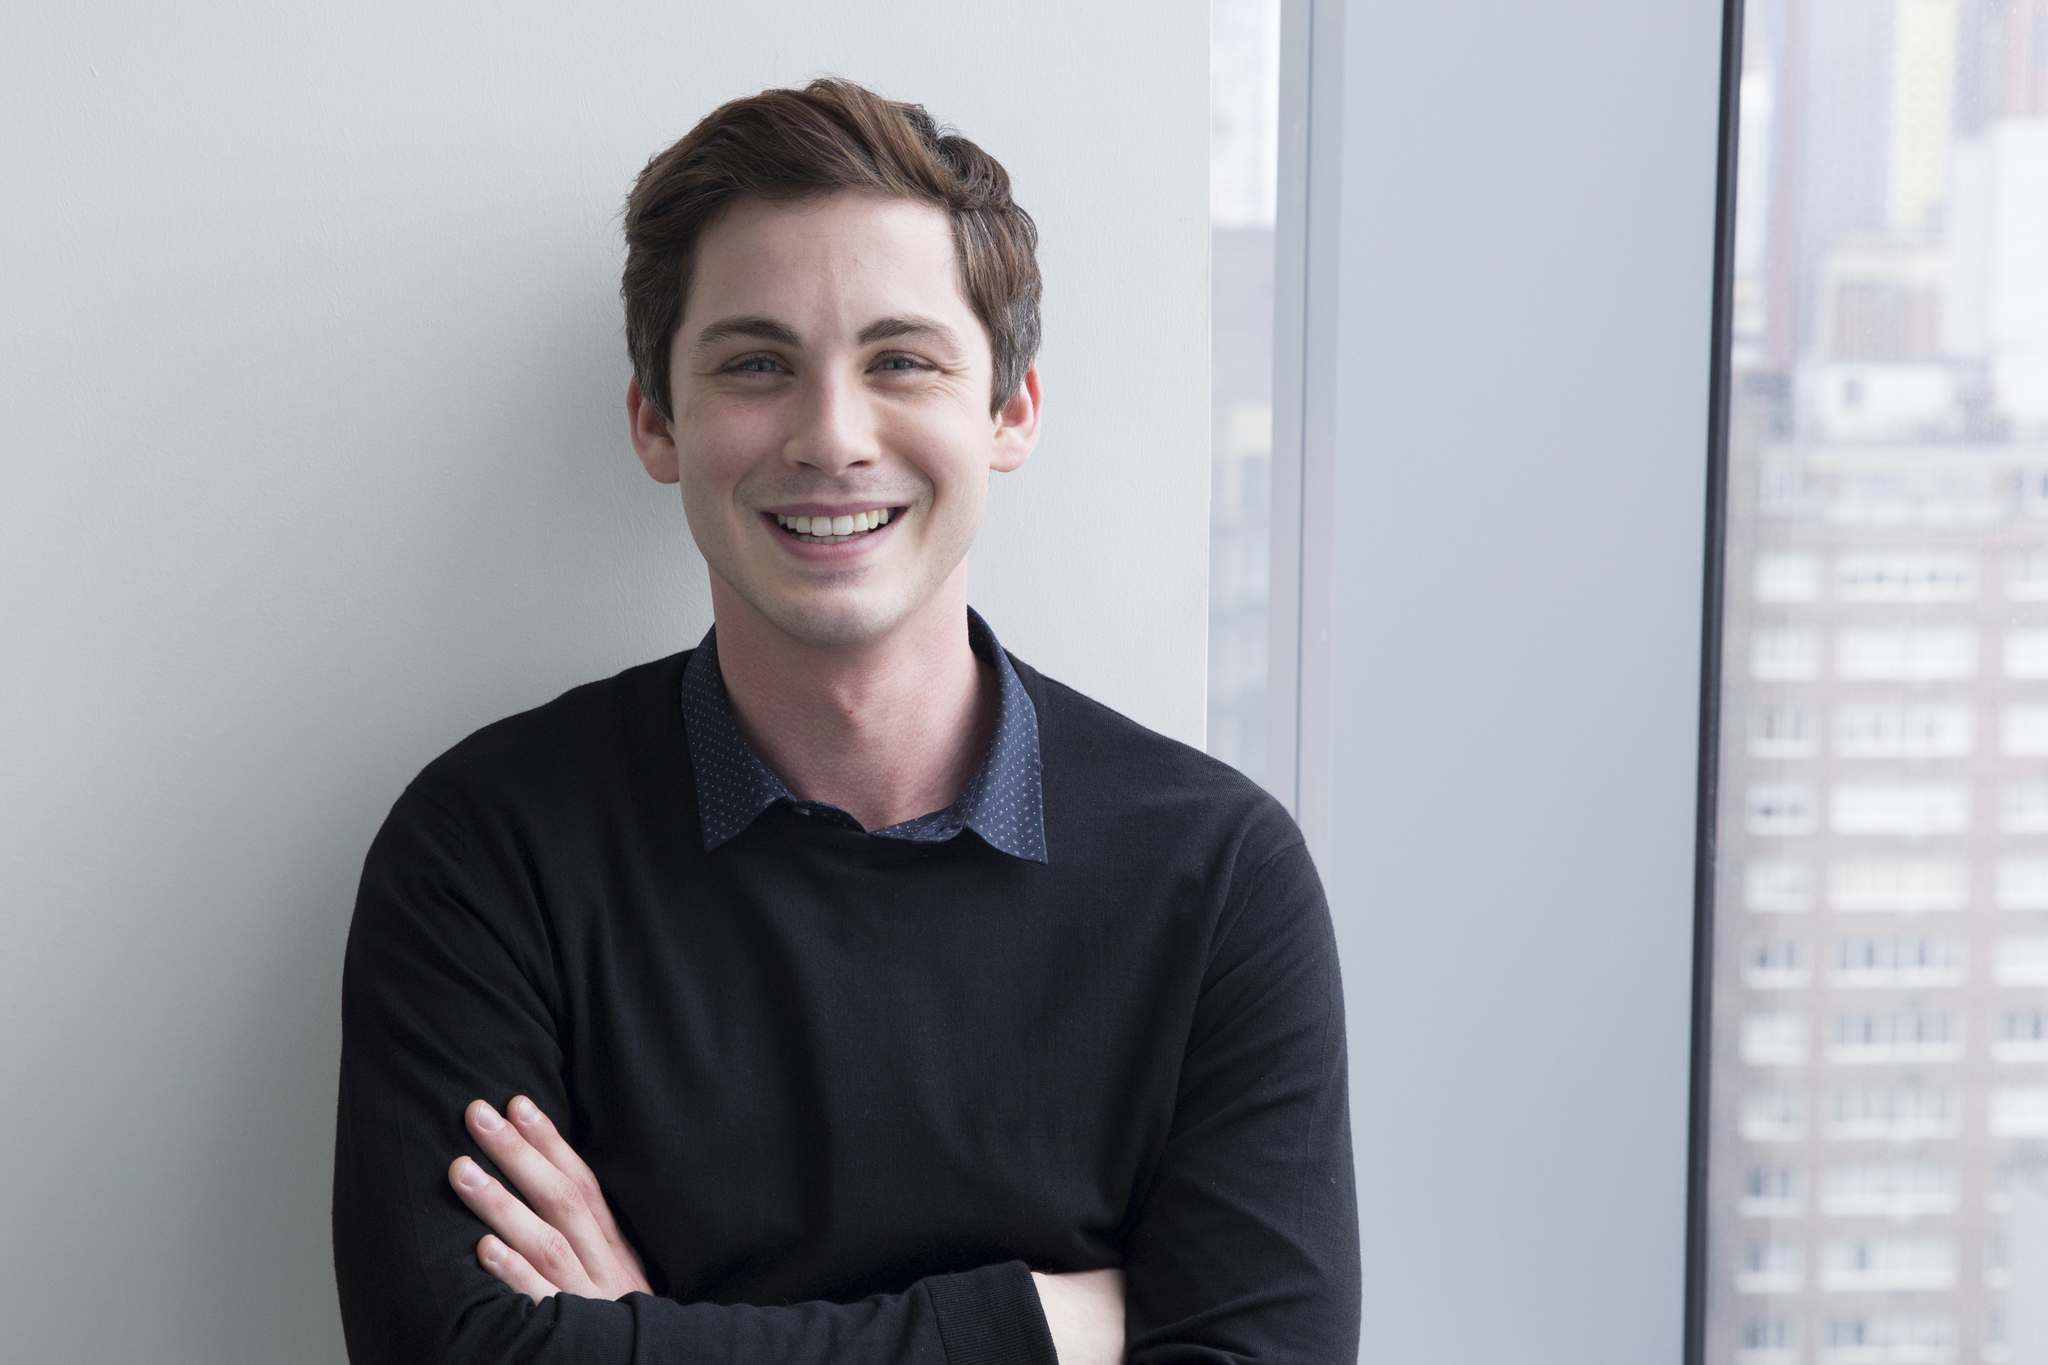 <strong>TODAY&rsquo;S BIRTHDAY</strong></p><p>Actor Logan Lerman (1992) shares your birthday . You are enthusiastic, determined and willing to share your opinions. You are also honest and upright. This is a year of building solid foundations. Simplify your life. Channel your energy in one direction. Exercise is important. Take up yoga, martial arts or jogging &mdash; any physical discipline to help ground you. Hard work and effort will pay off this year. No pain; no gain.</p>